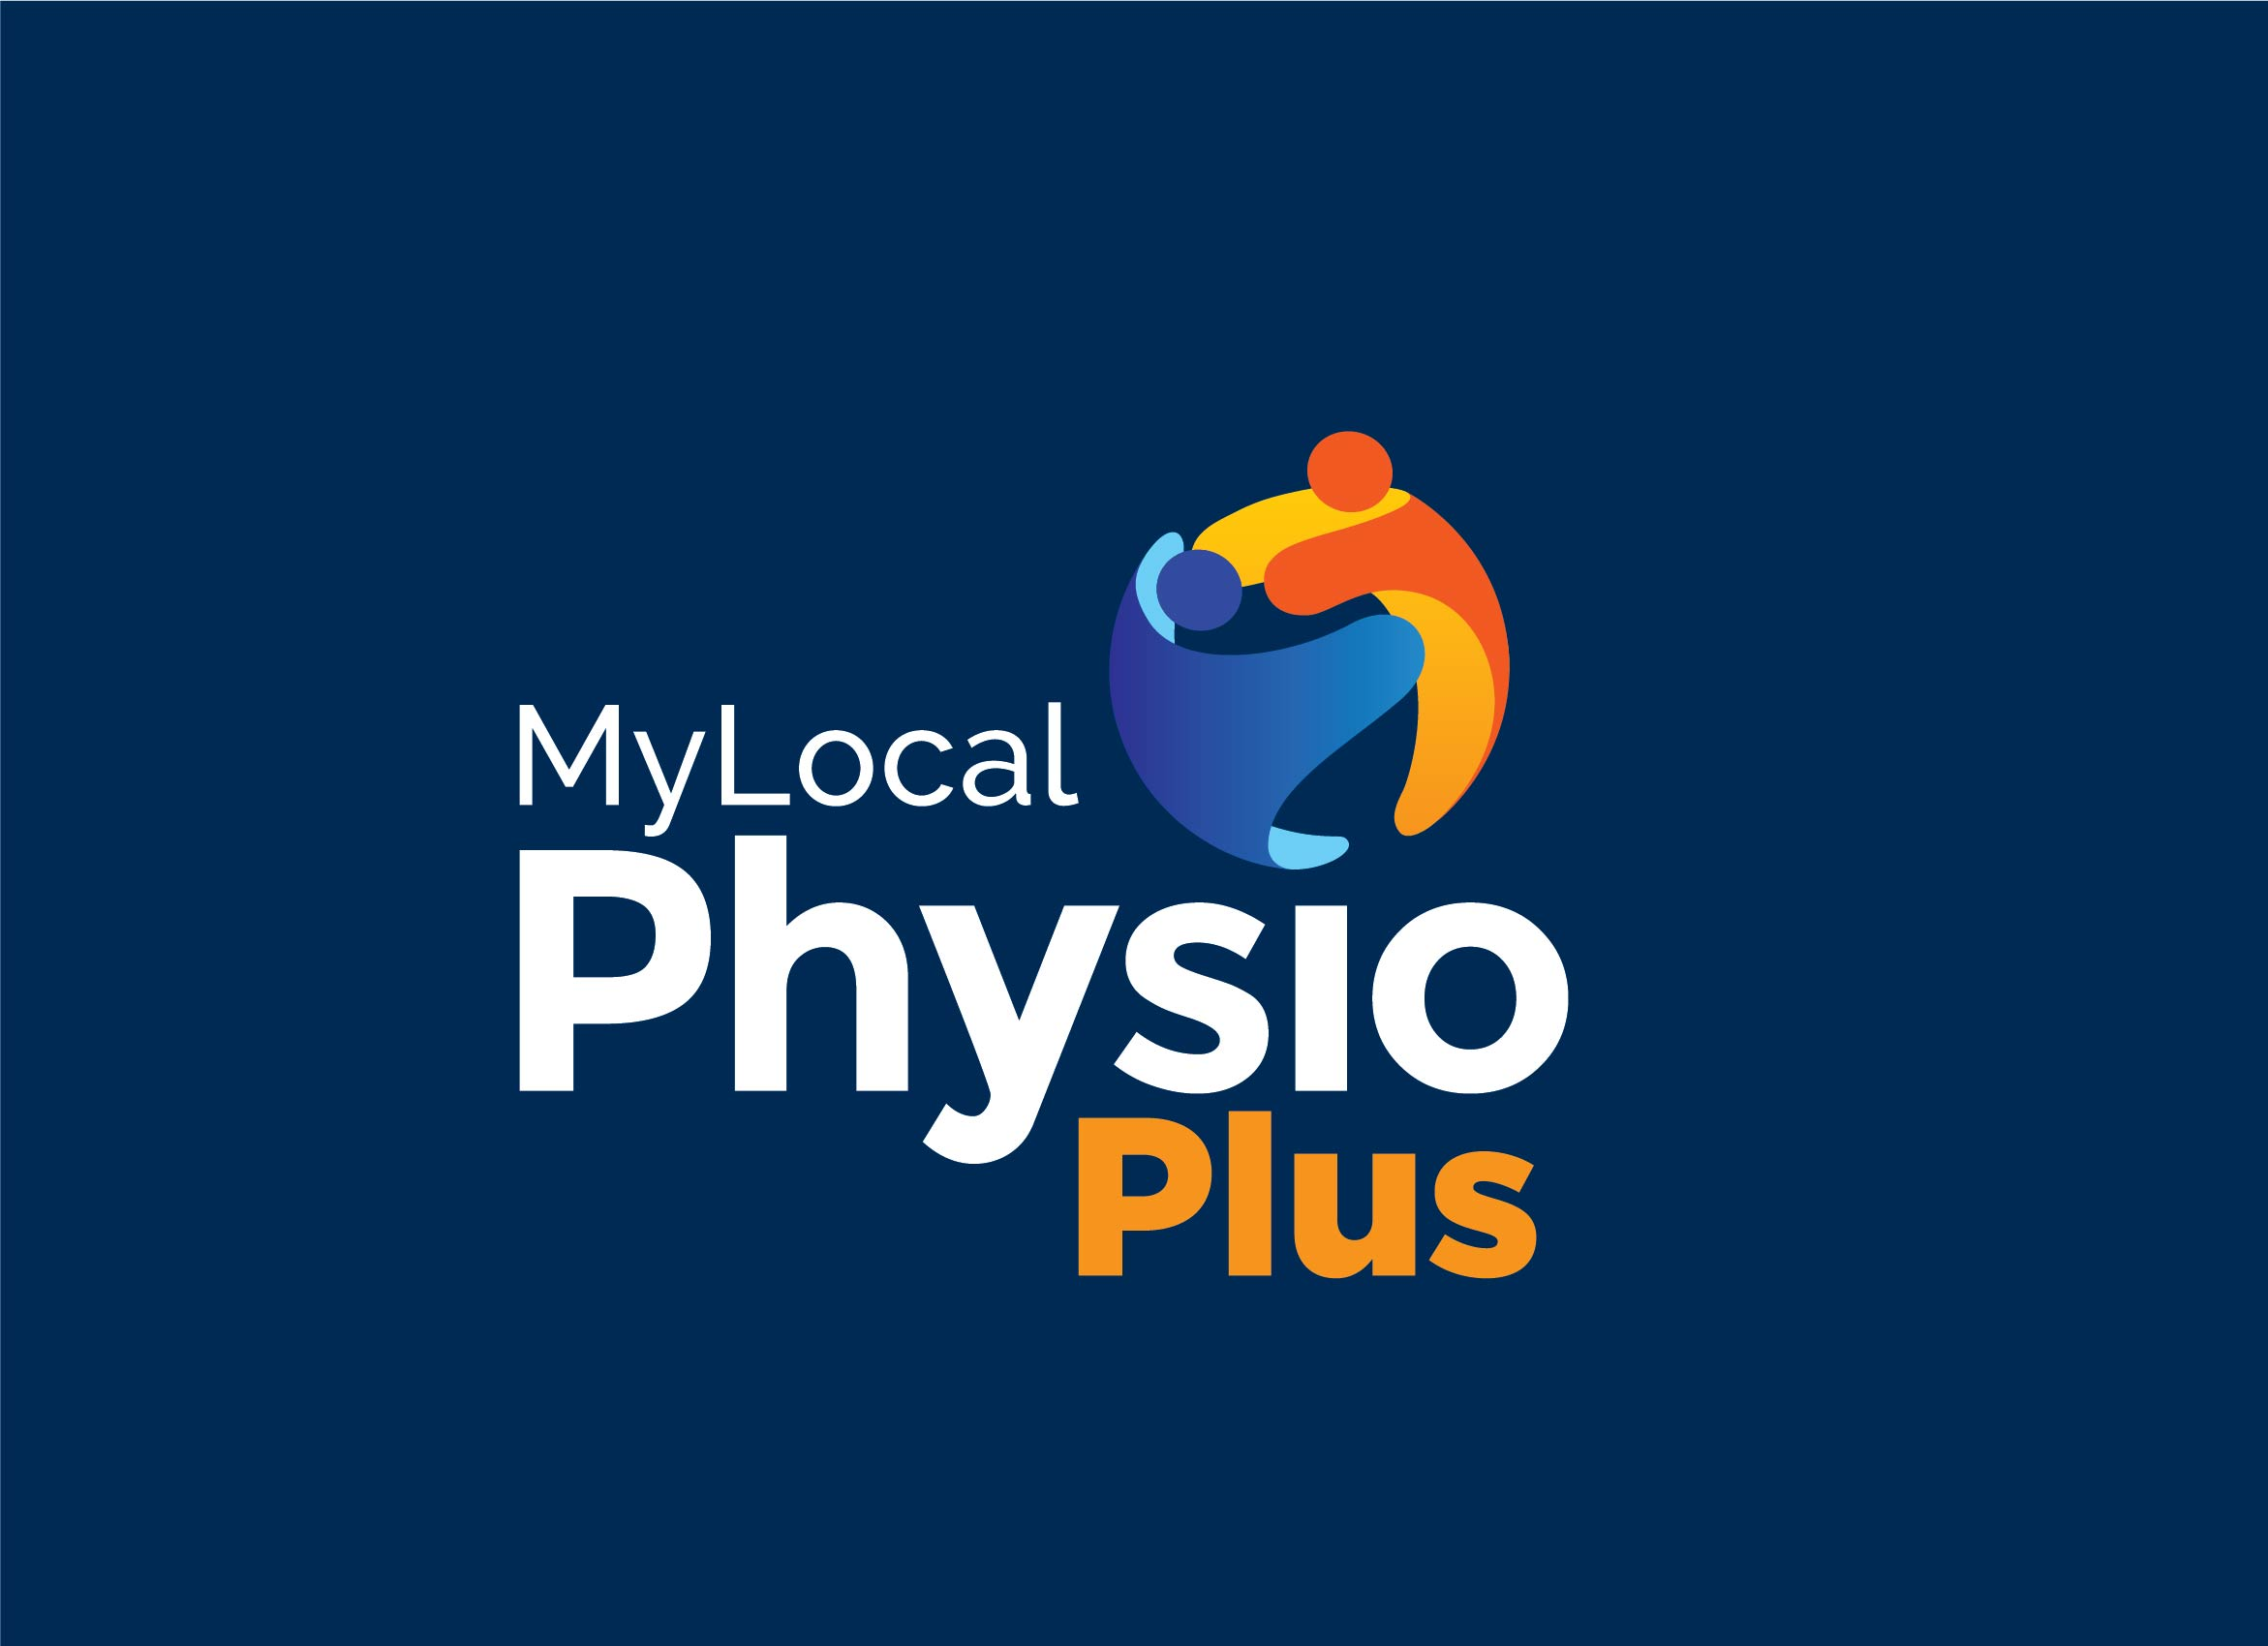 My Local Physio Plus